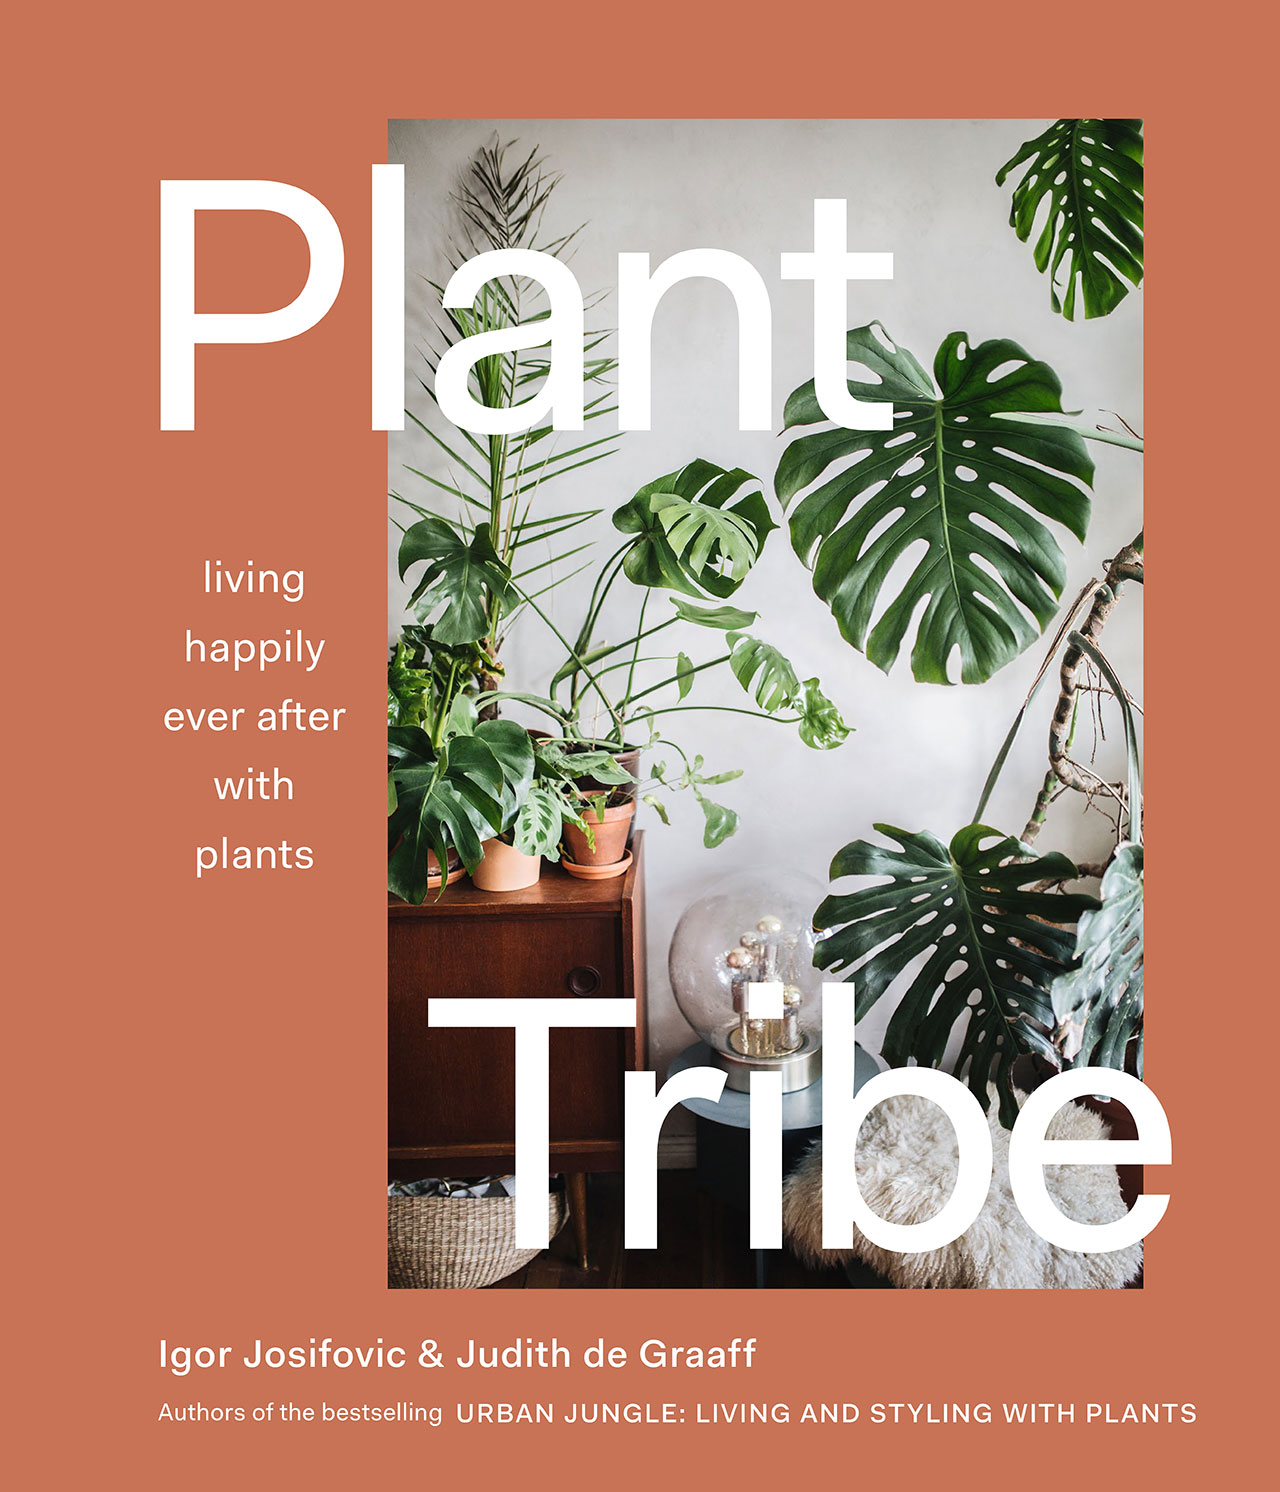 PLANT TRIBELIVING HAPPILY EVER AFTER WITH PLANTSBy Igor Josifovic & Judith de Graaff Book cover.